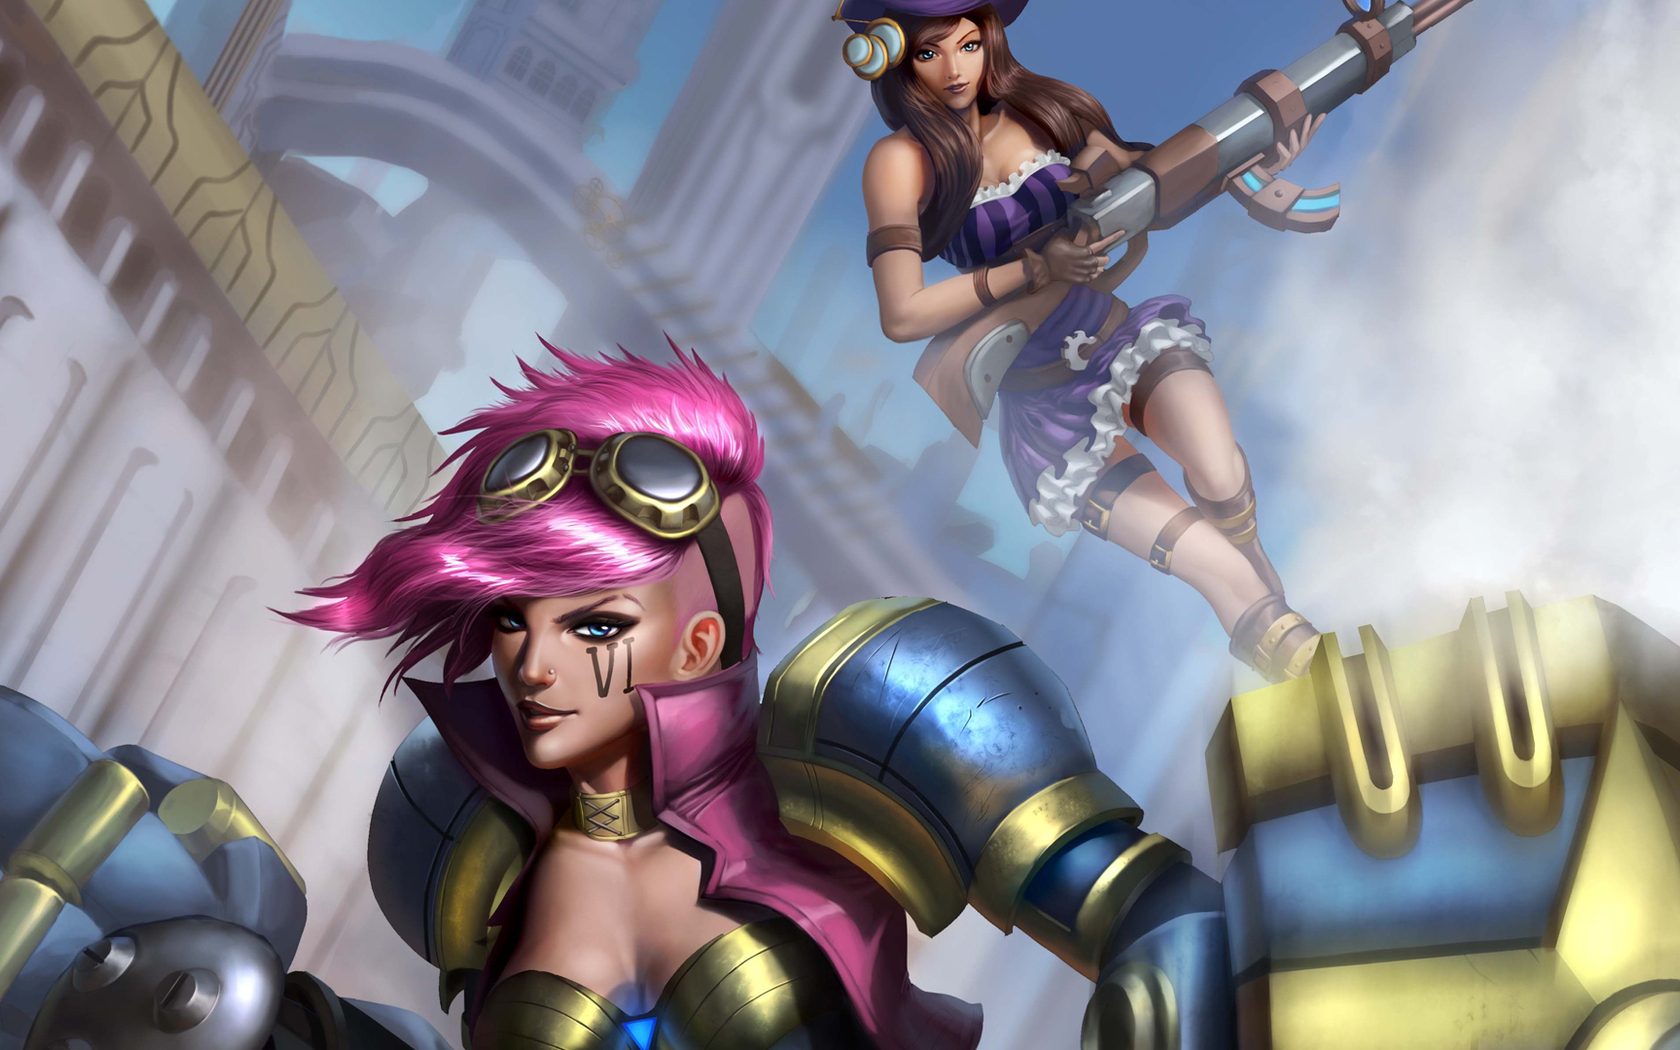 Free Download Caitlyn And Vi In League Of Legends Wallpaper 40457